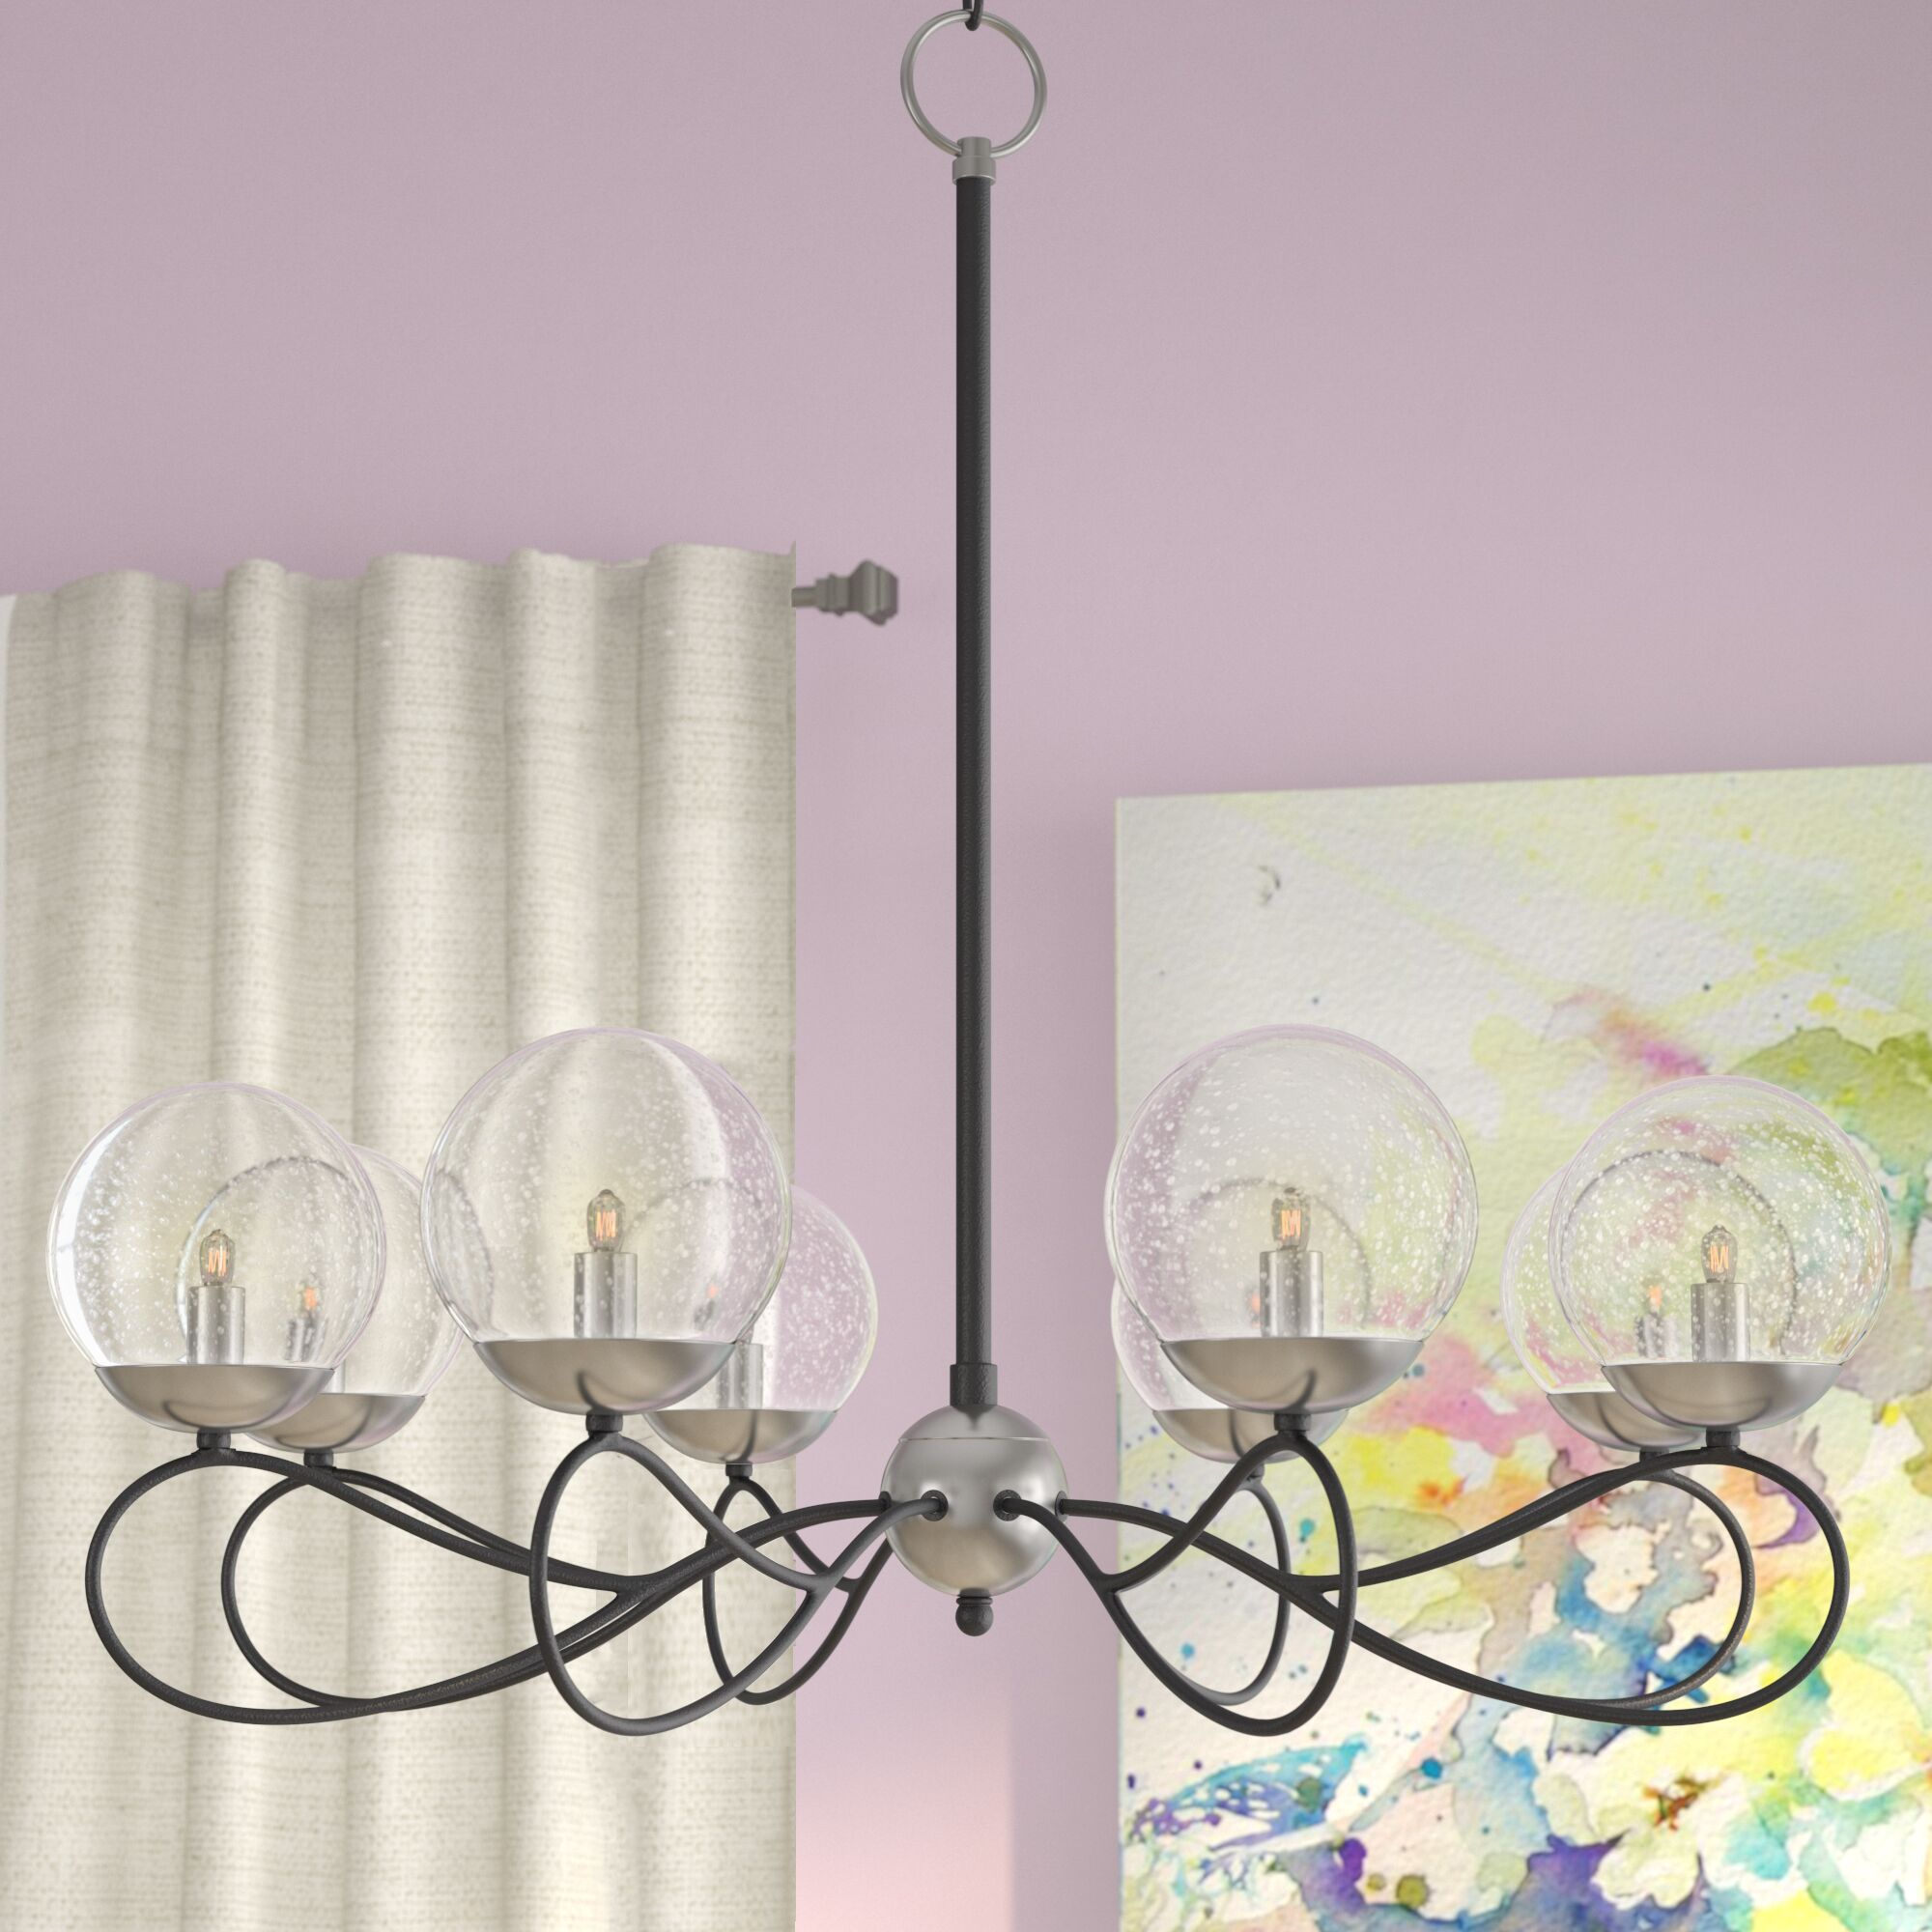 Causeway 8-Light Sputnik Chandelier Bulb Type: G9 Clear Xenon, Finish: Textured Bronze/Satin Brass